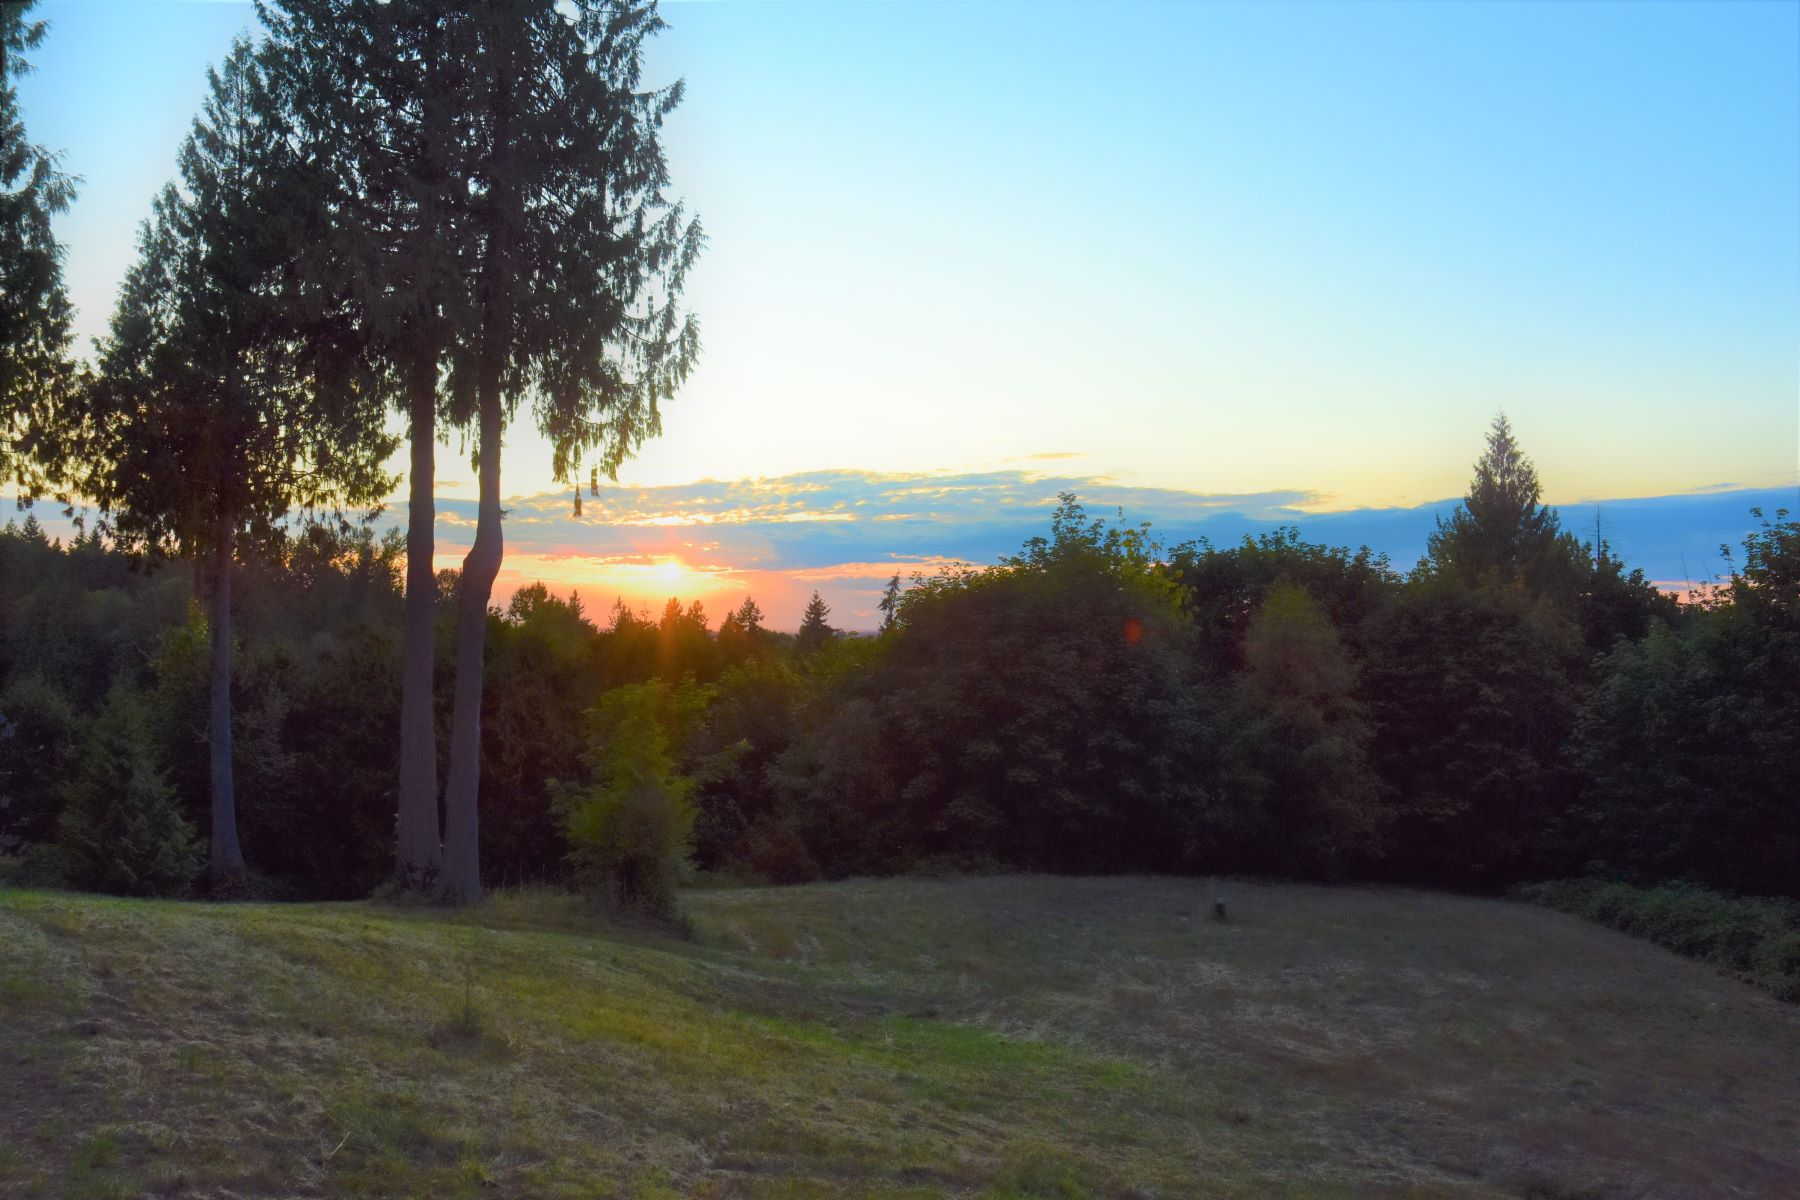 Single Family Homes for Sale at 26530 Black Nugget Rd, Issaquah, WA 98029 26530 Black Nugget Rd Issaquah, Washington 98029 United States